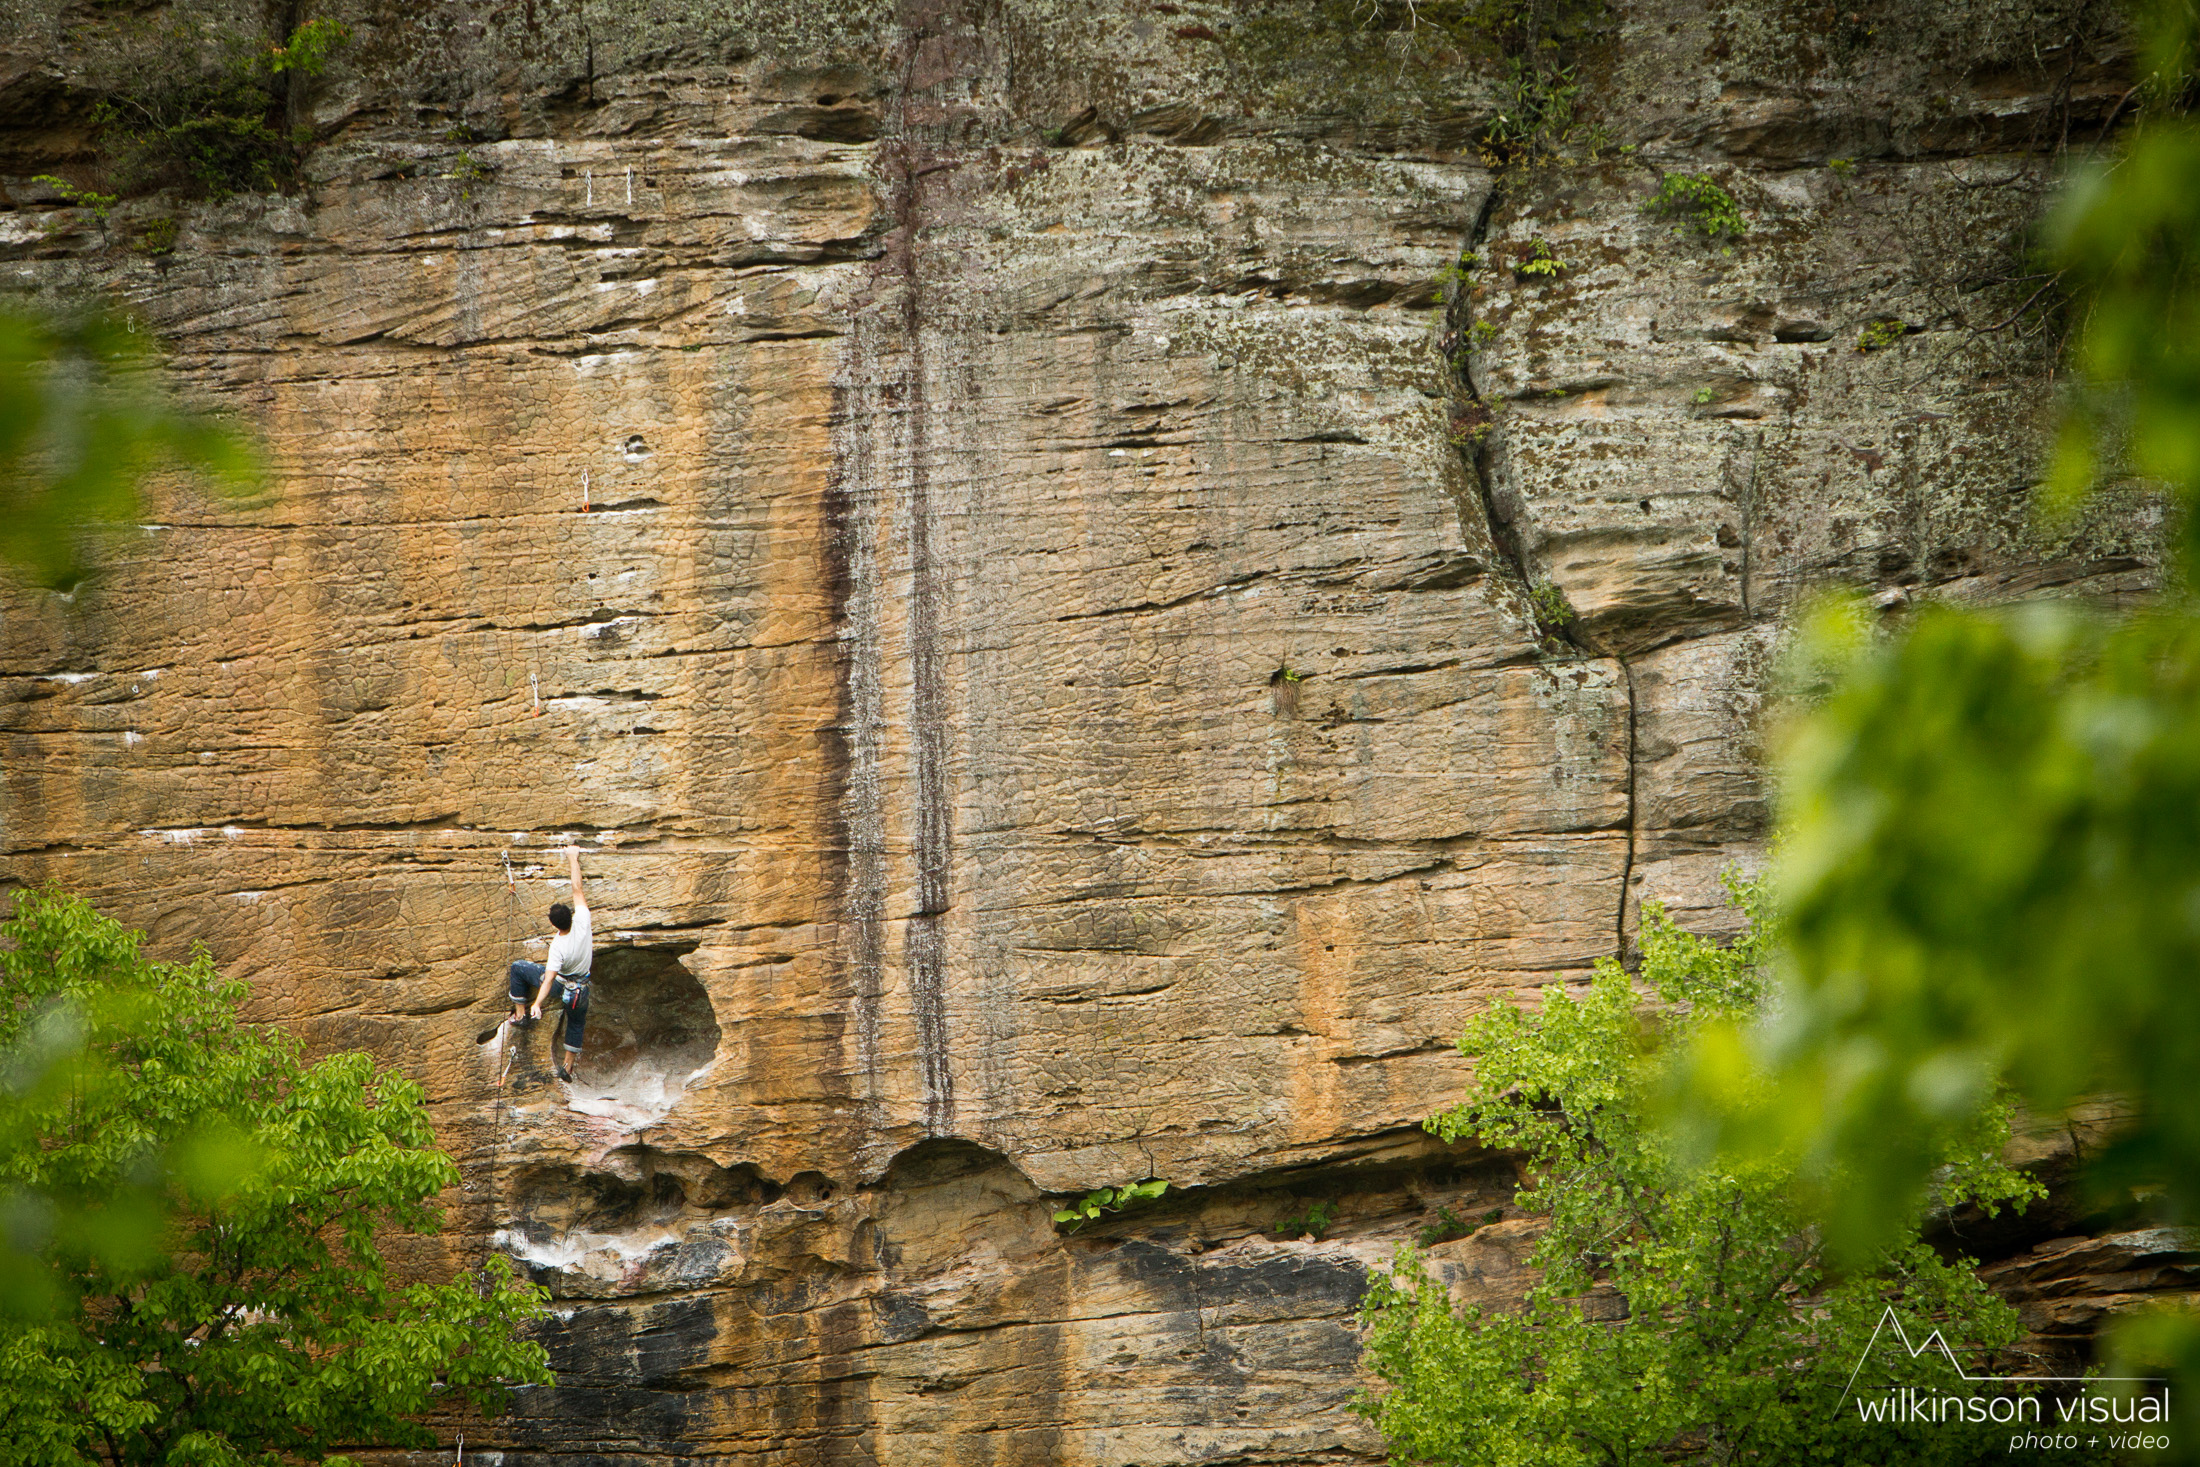 """An unknown rock climber ascends the route """"Banshee"""" in the Red River Gorge."""